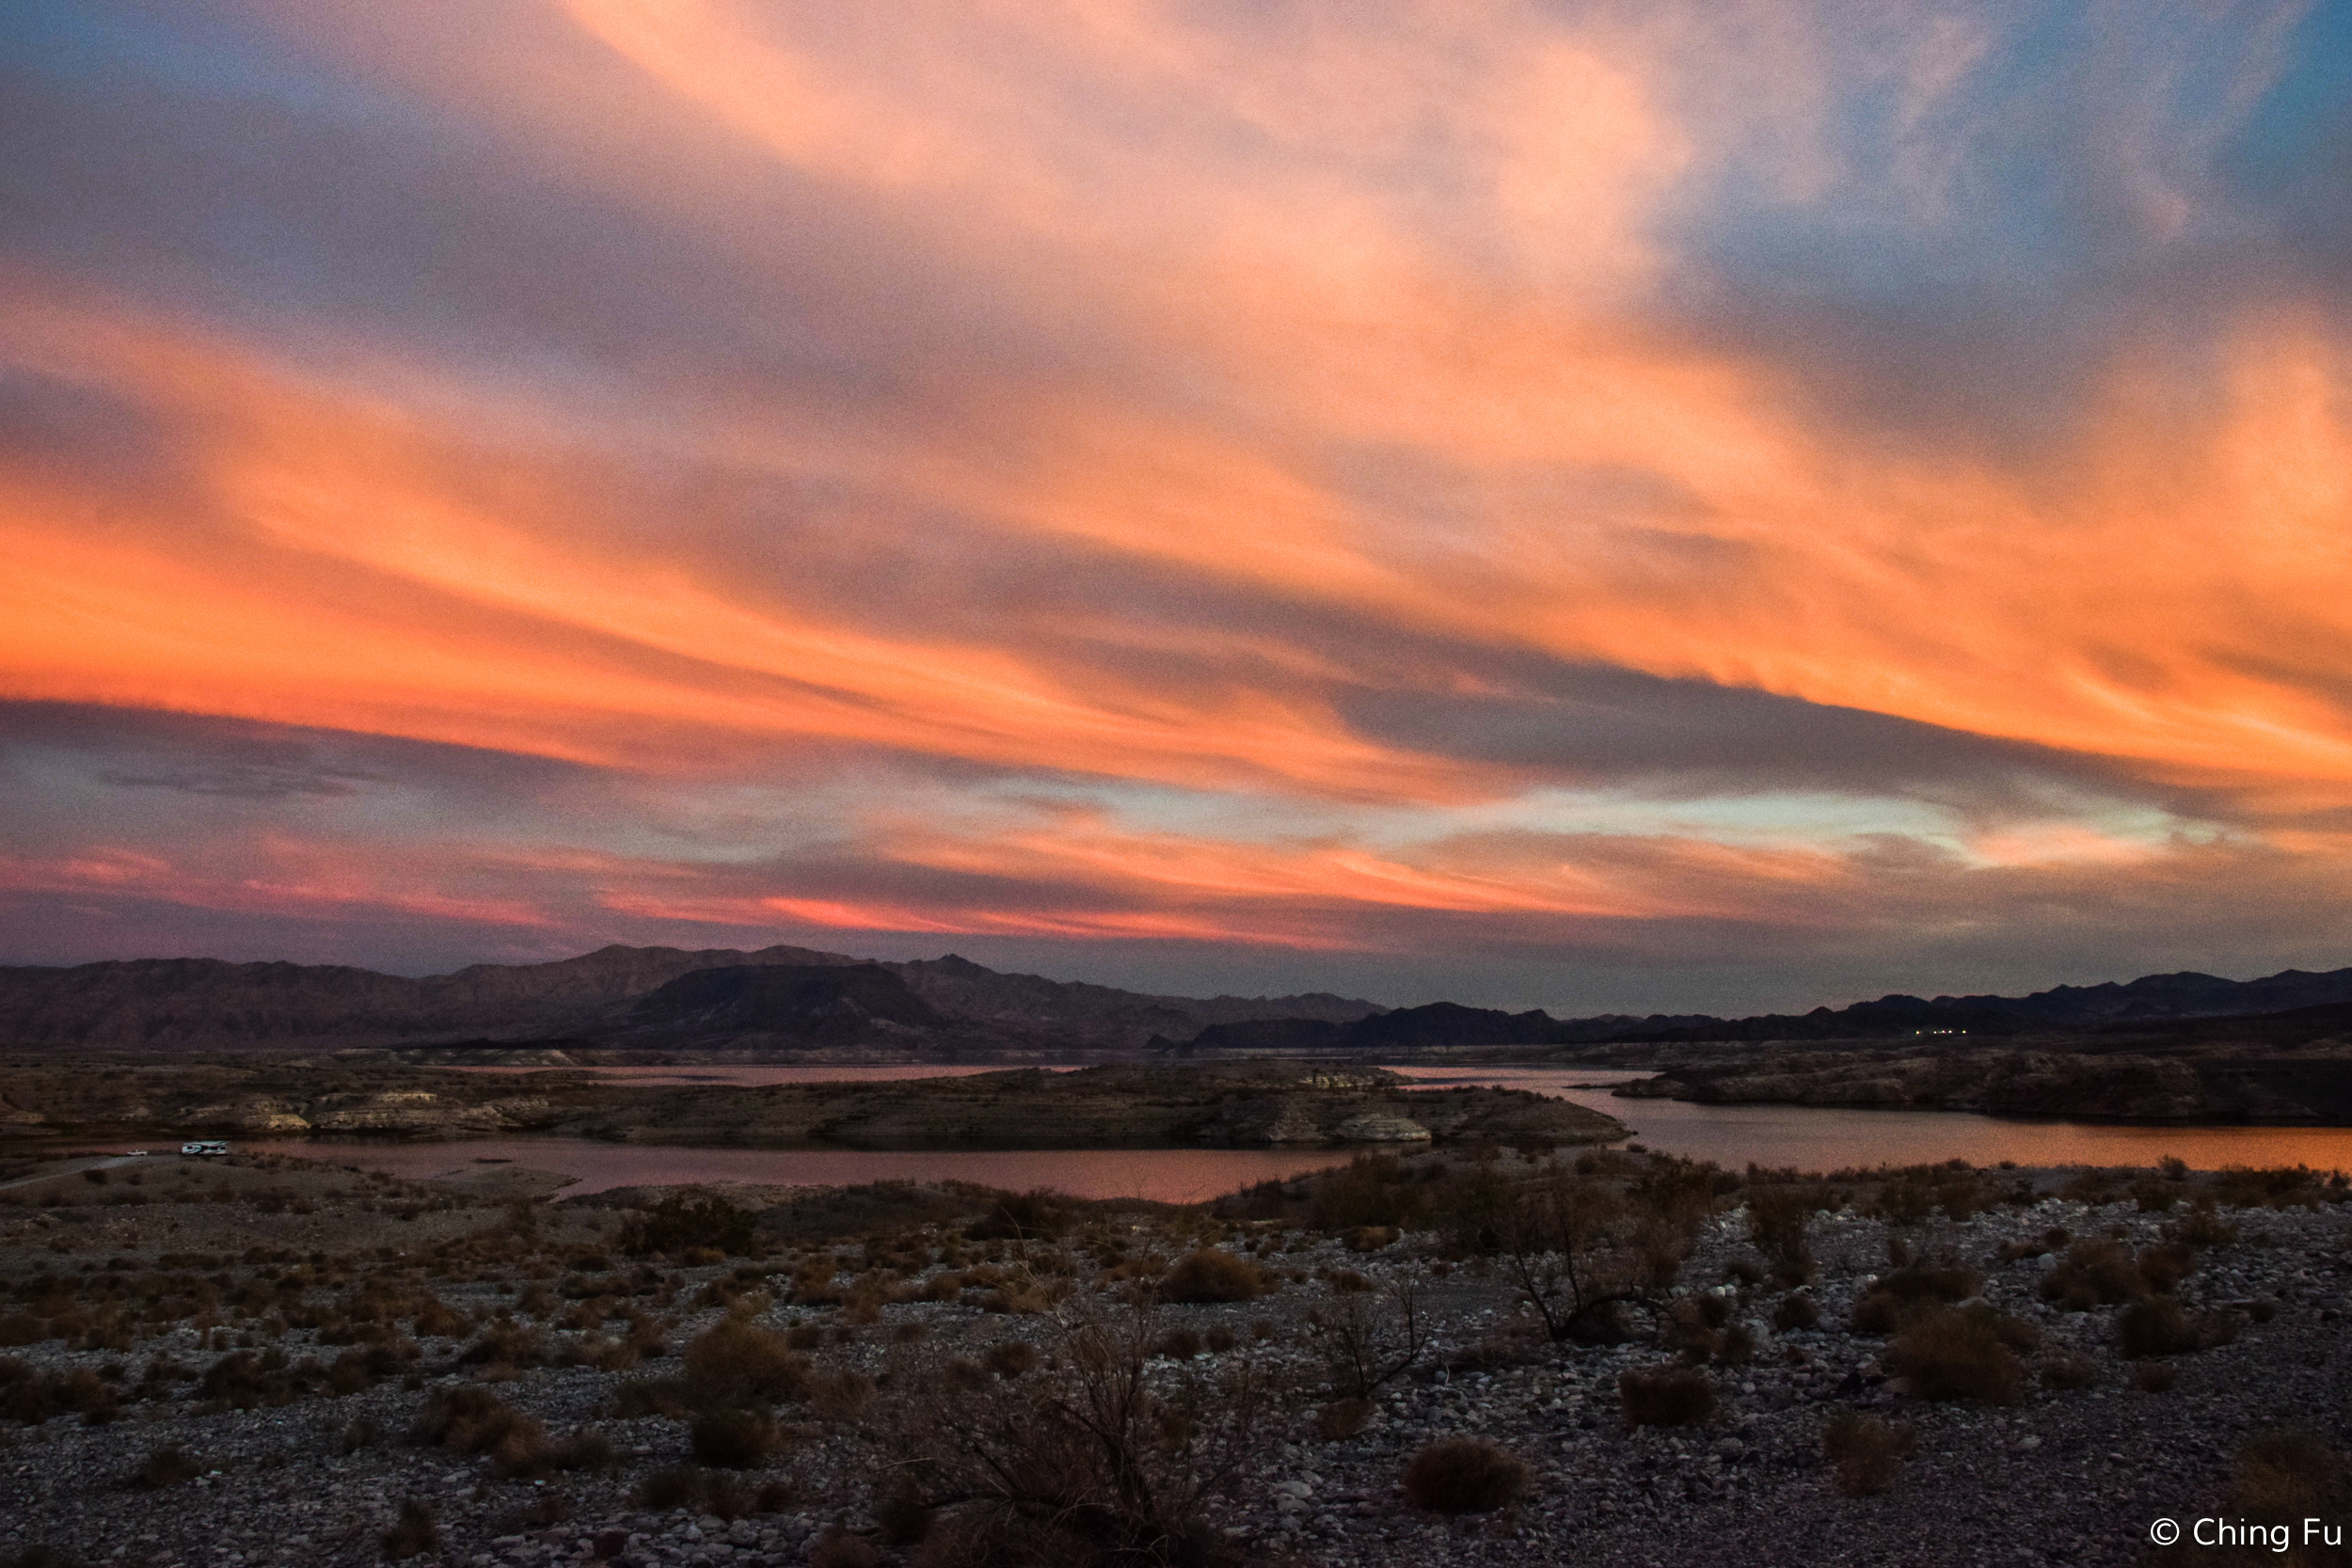 This was the view from our boondocking site at Government Wash.